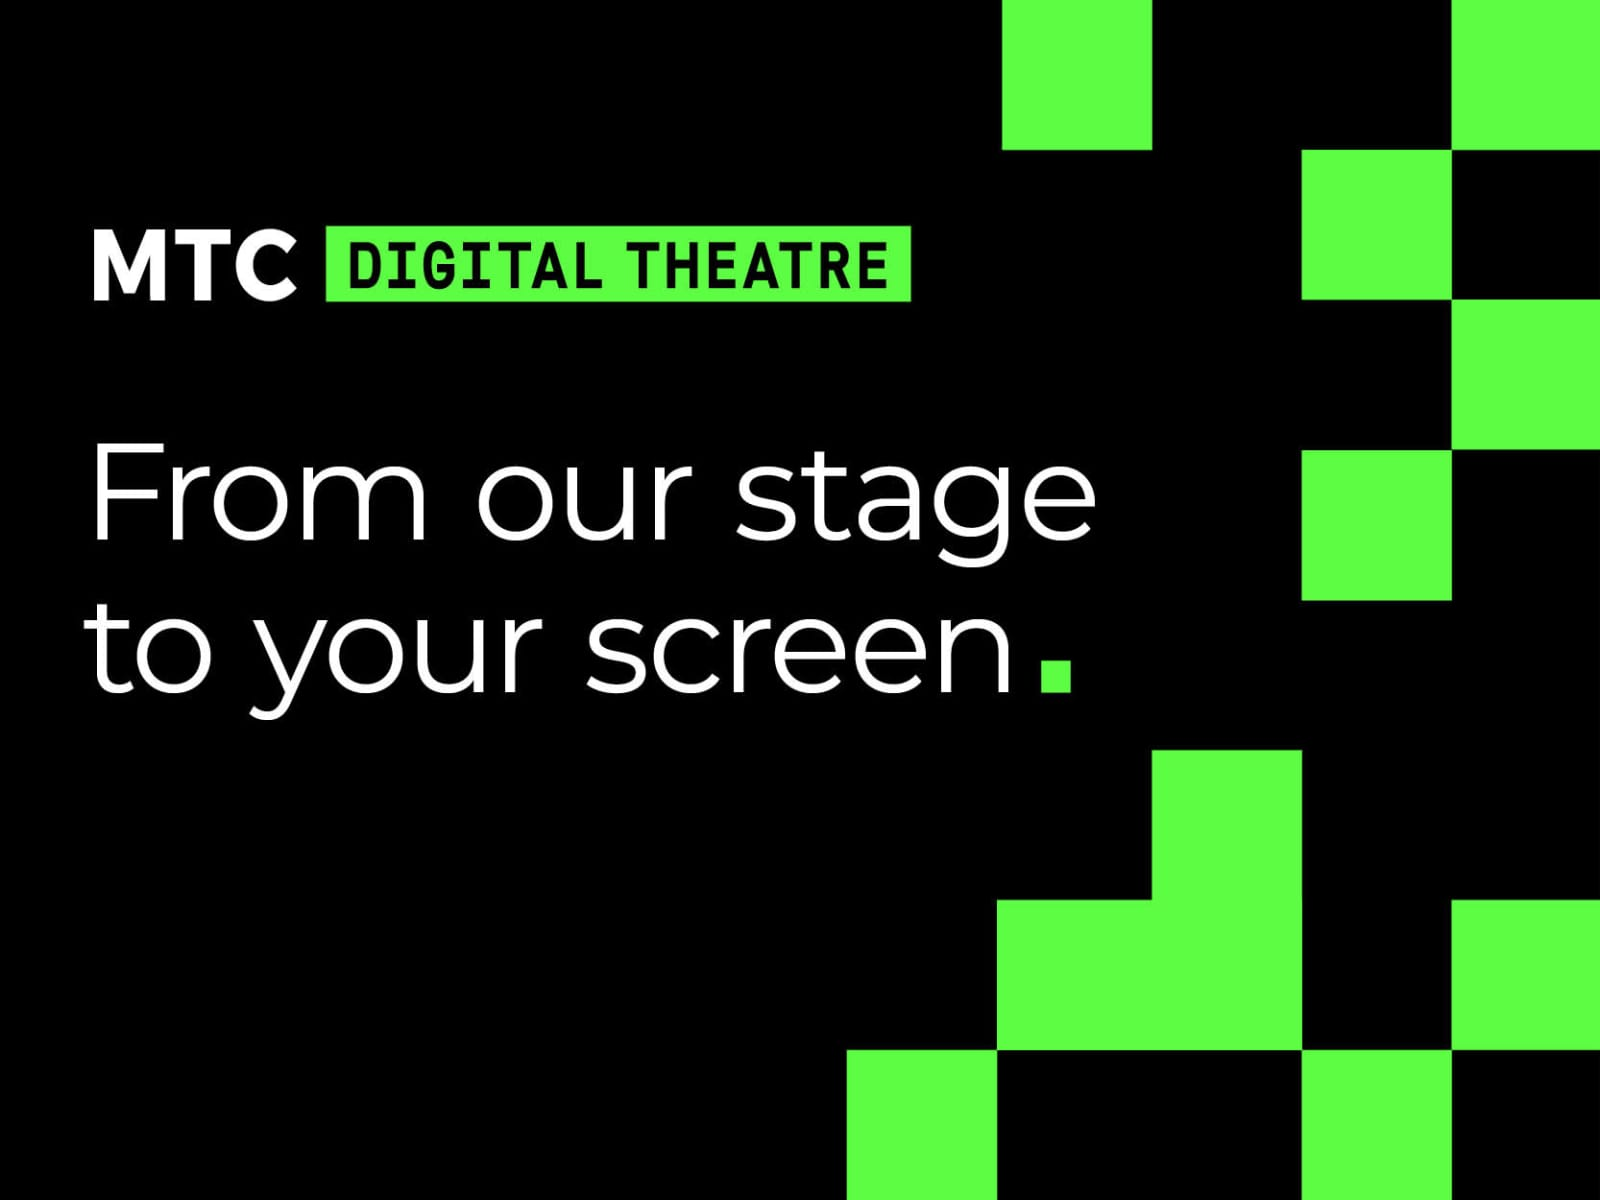 Artwork for MTC Digital Theatre